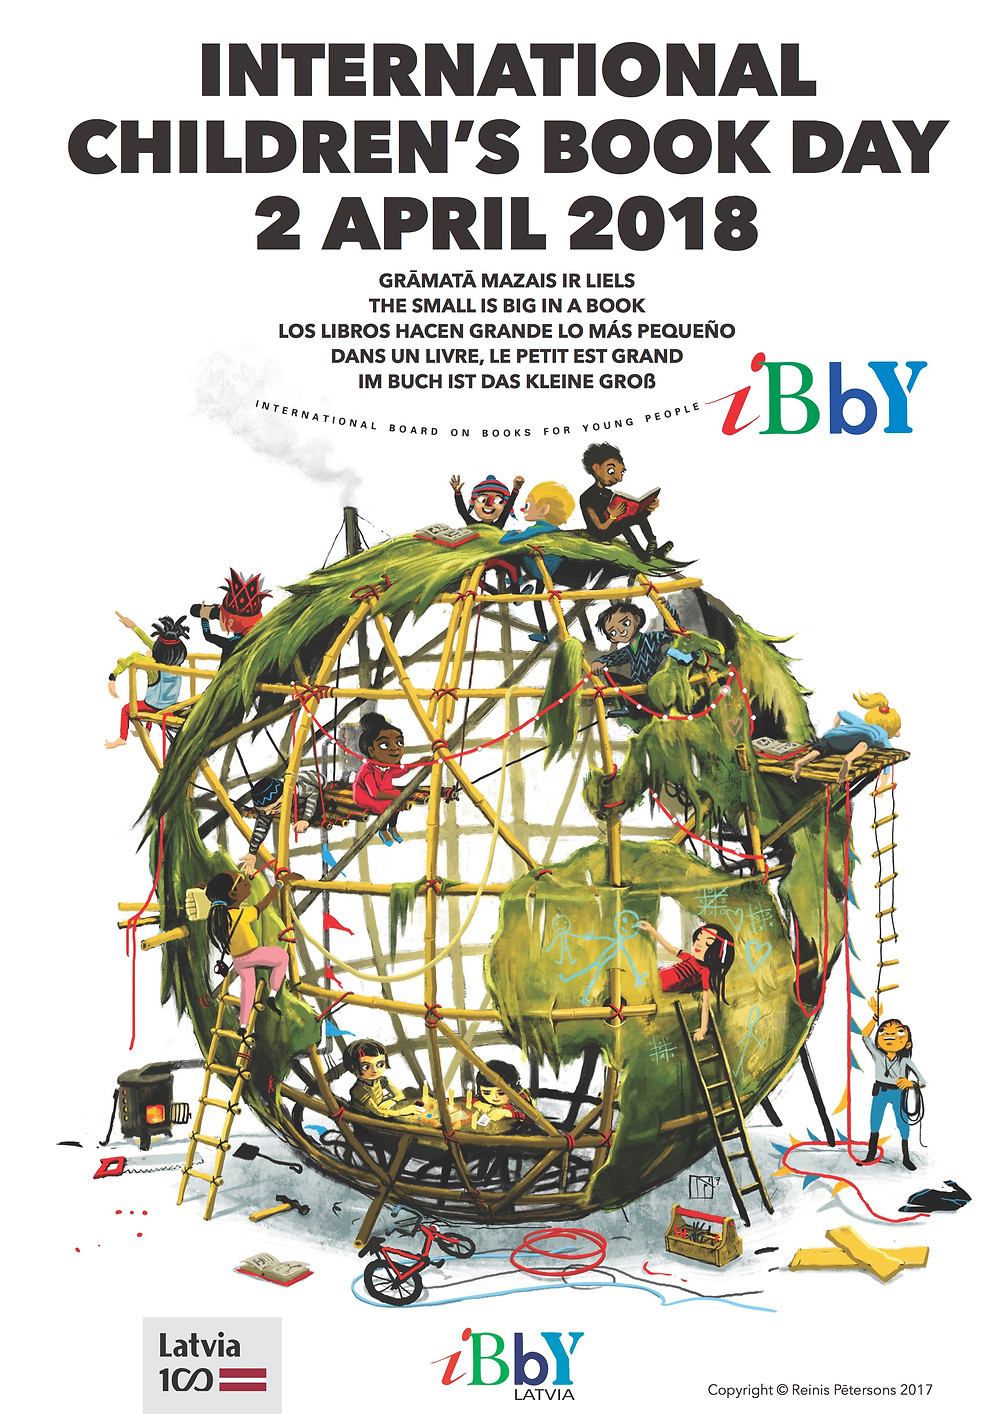 International Children's Book Day Poster 2018 created by Reinis Pētersons